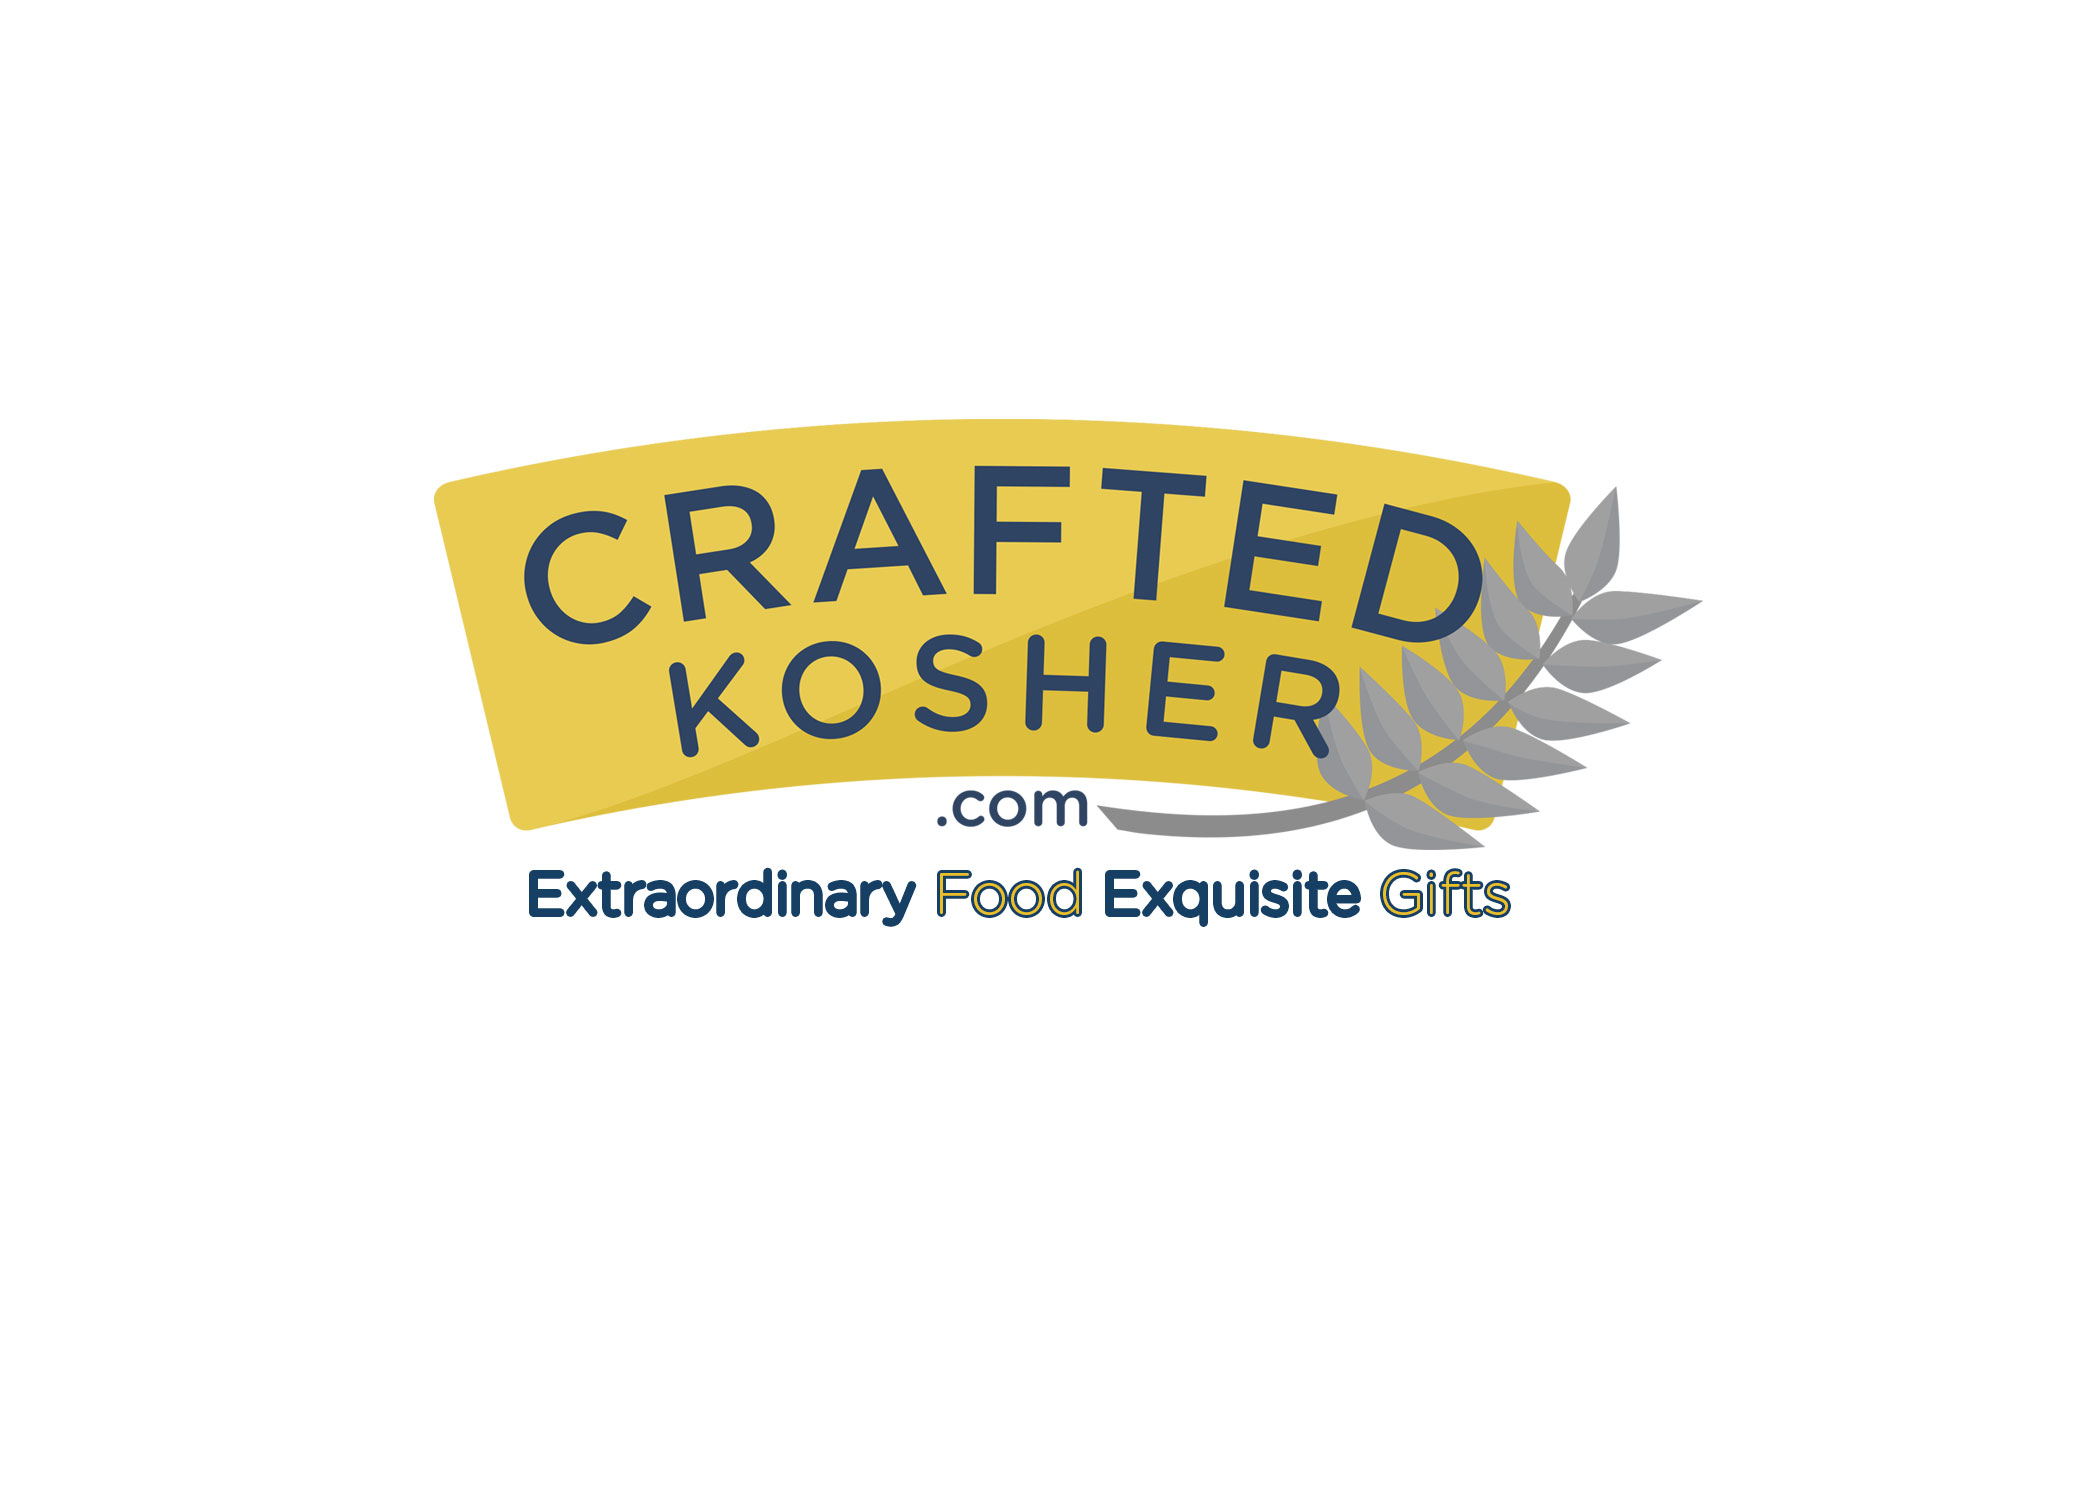 Hot Sale On Gourmet Kosher Honeys And Gift Boxes Just In Time For Rosh Hashana!